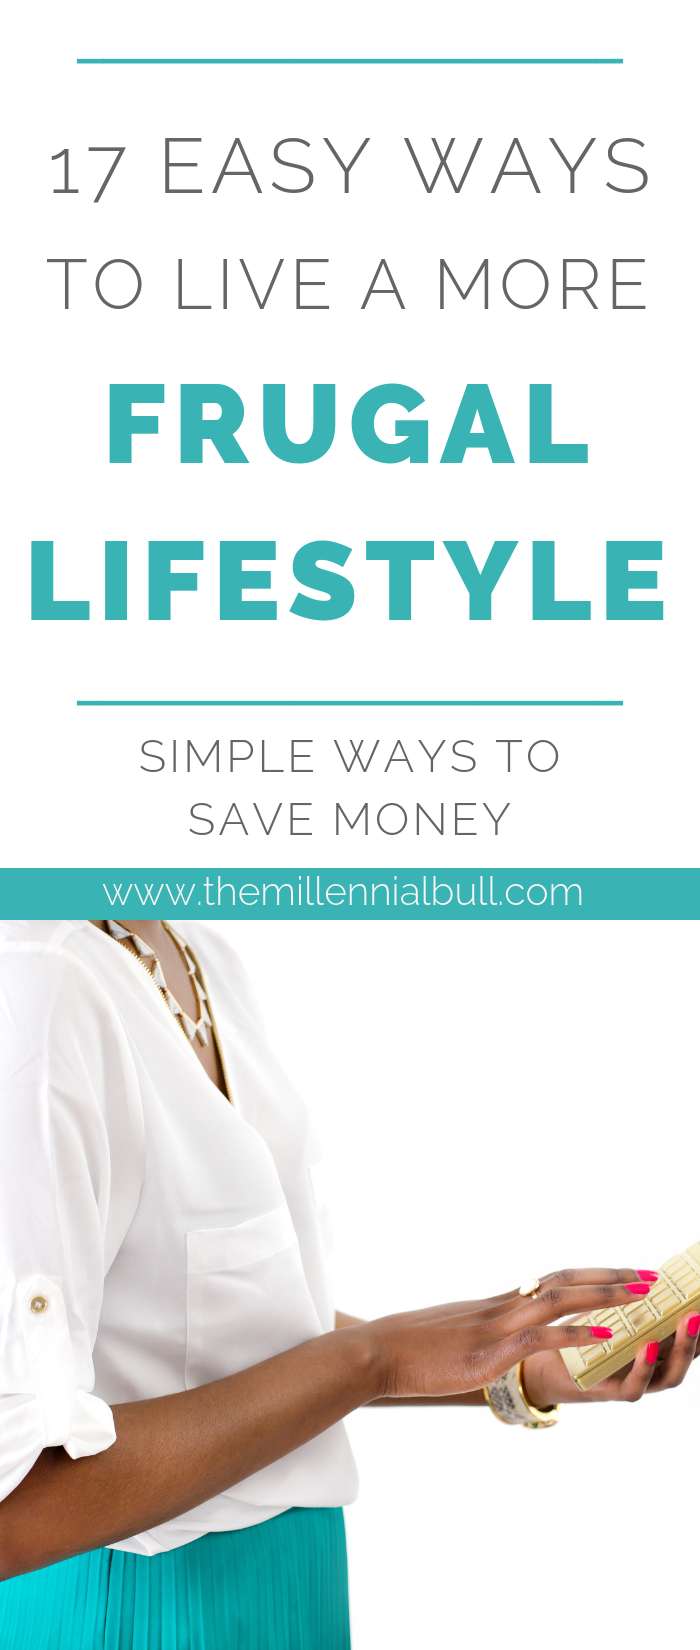 frugal lifestyle 002 - 17 Easy Ways To Live A More Frugal Life